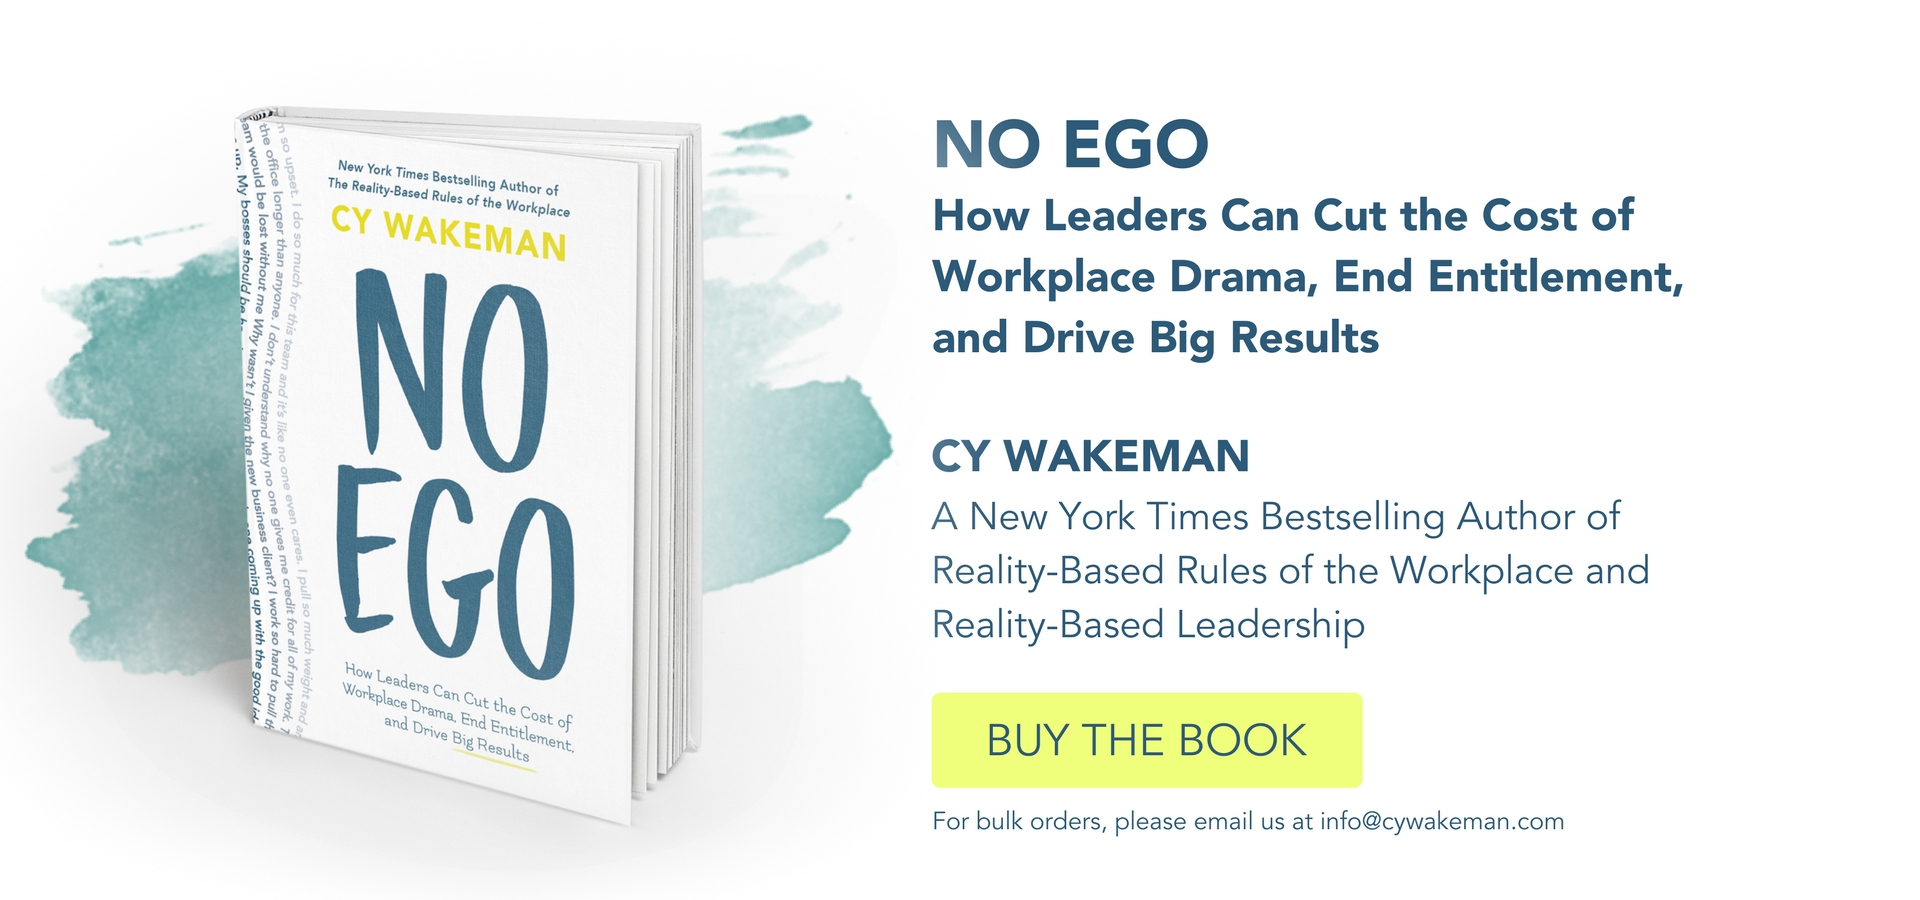 No Ego Book by Cy Wakeman